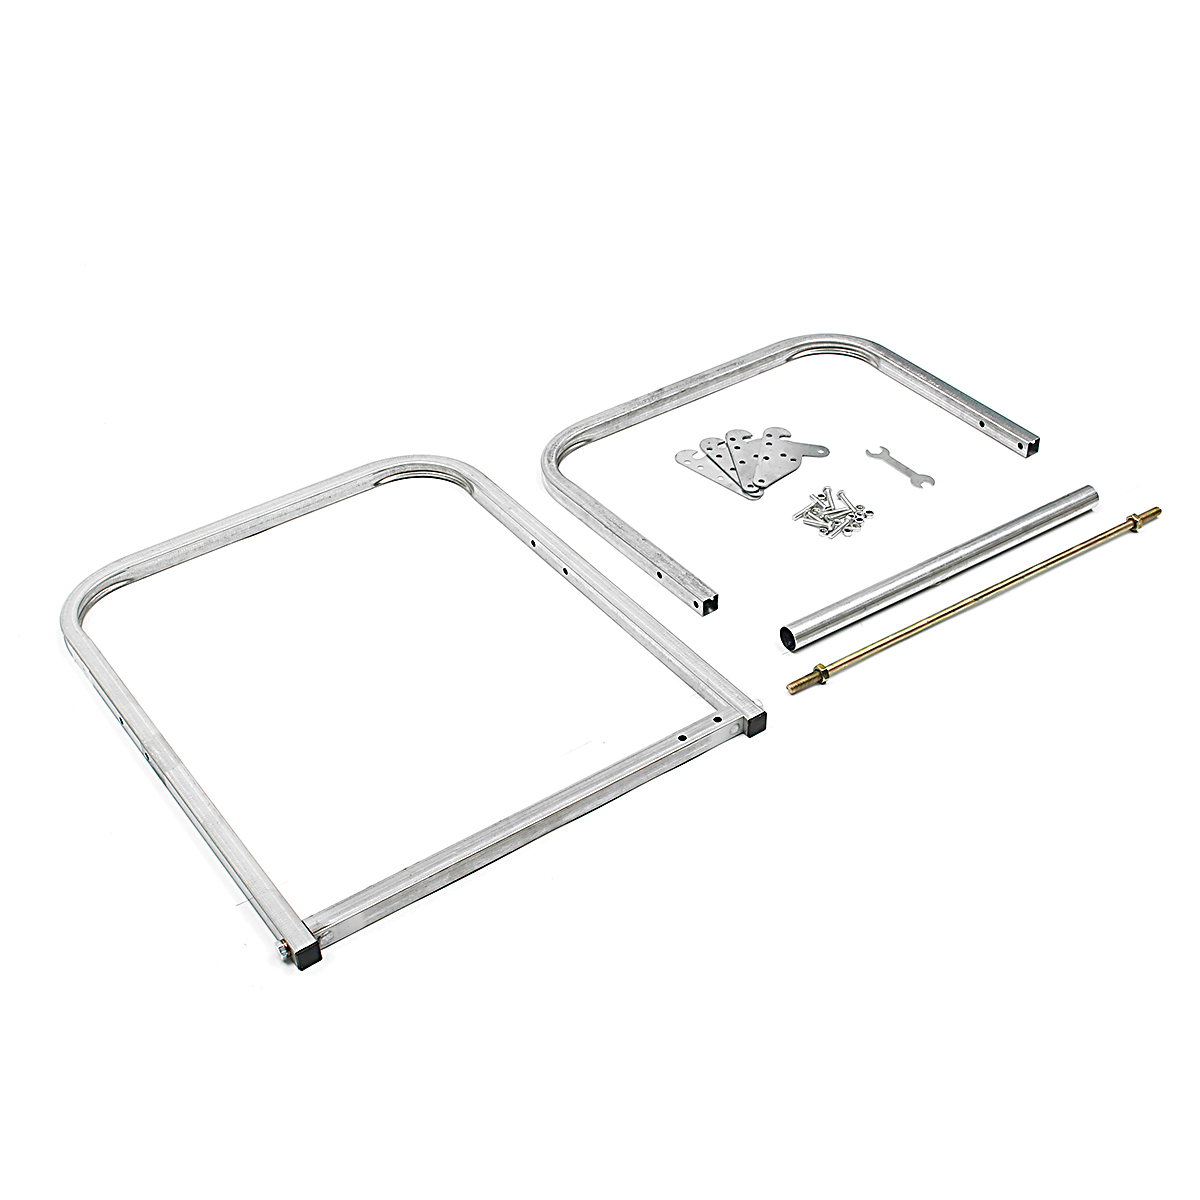 Cable Holder Stand Cable Wire Reel Caddy Foldable Optical